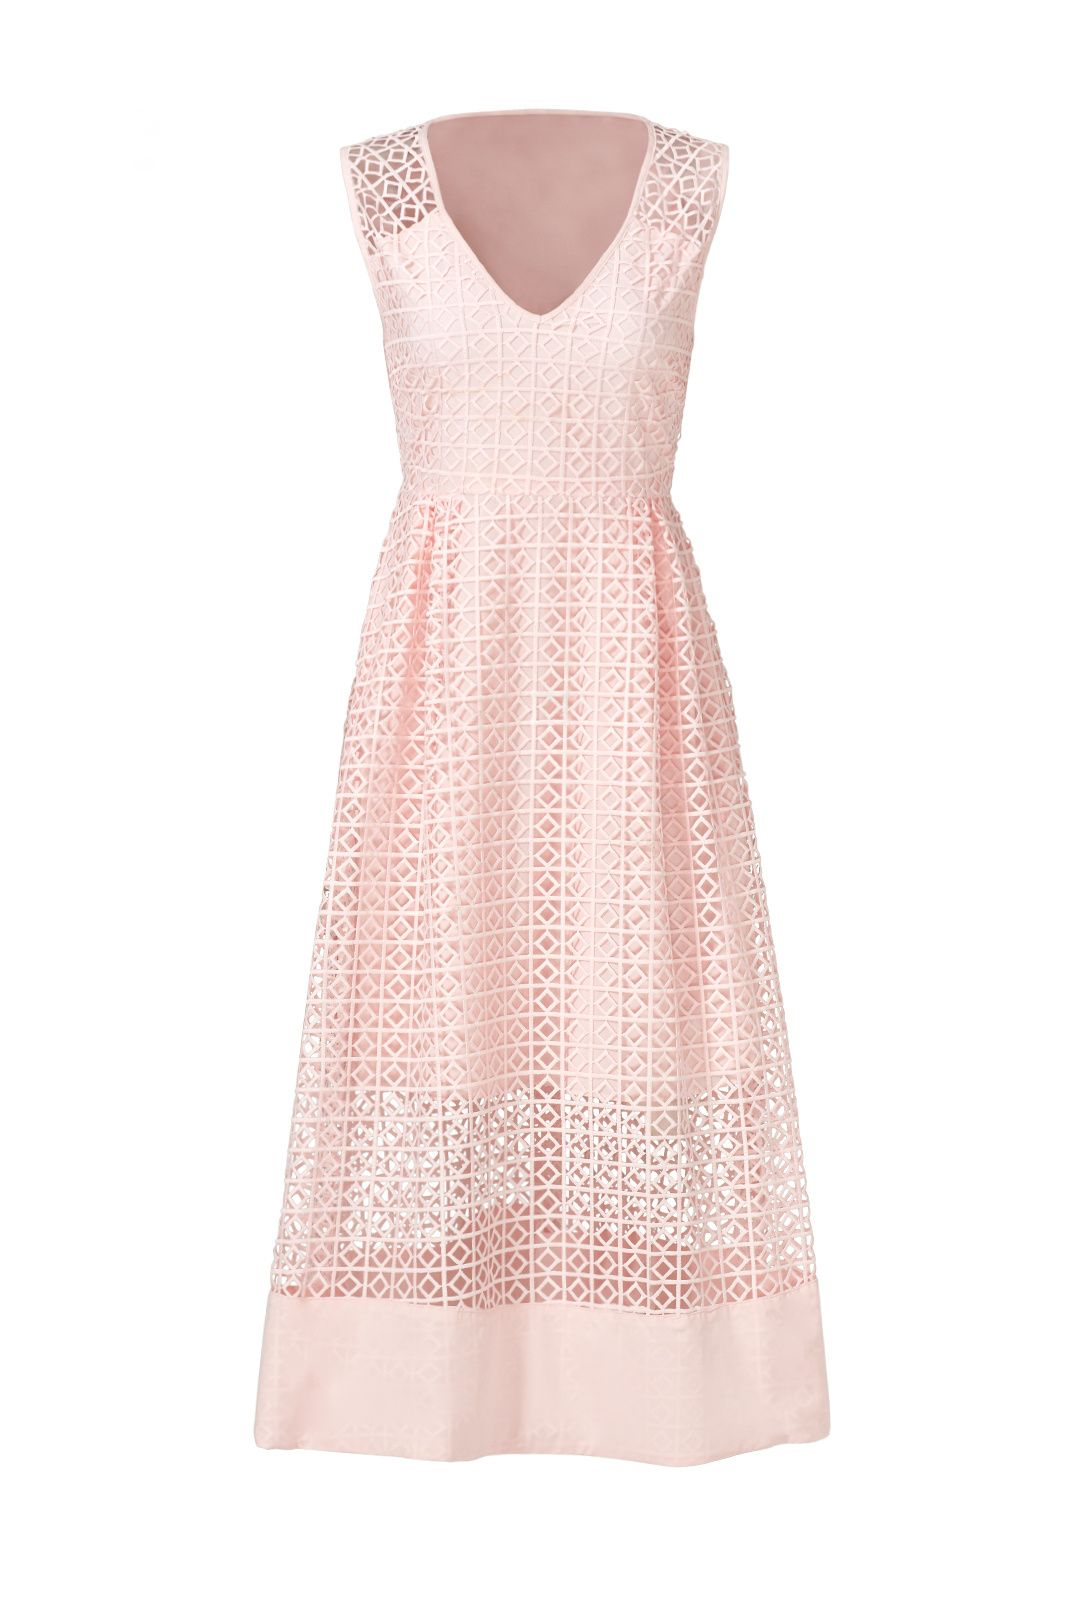 Rent Blush Geometric Lace Dress by ST by Olcay Gulsen for $35 - $50 ...